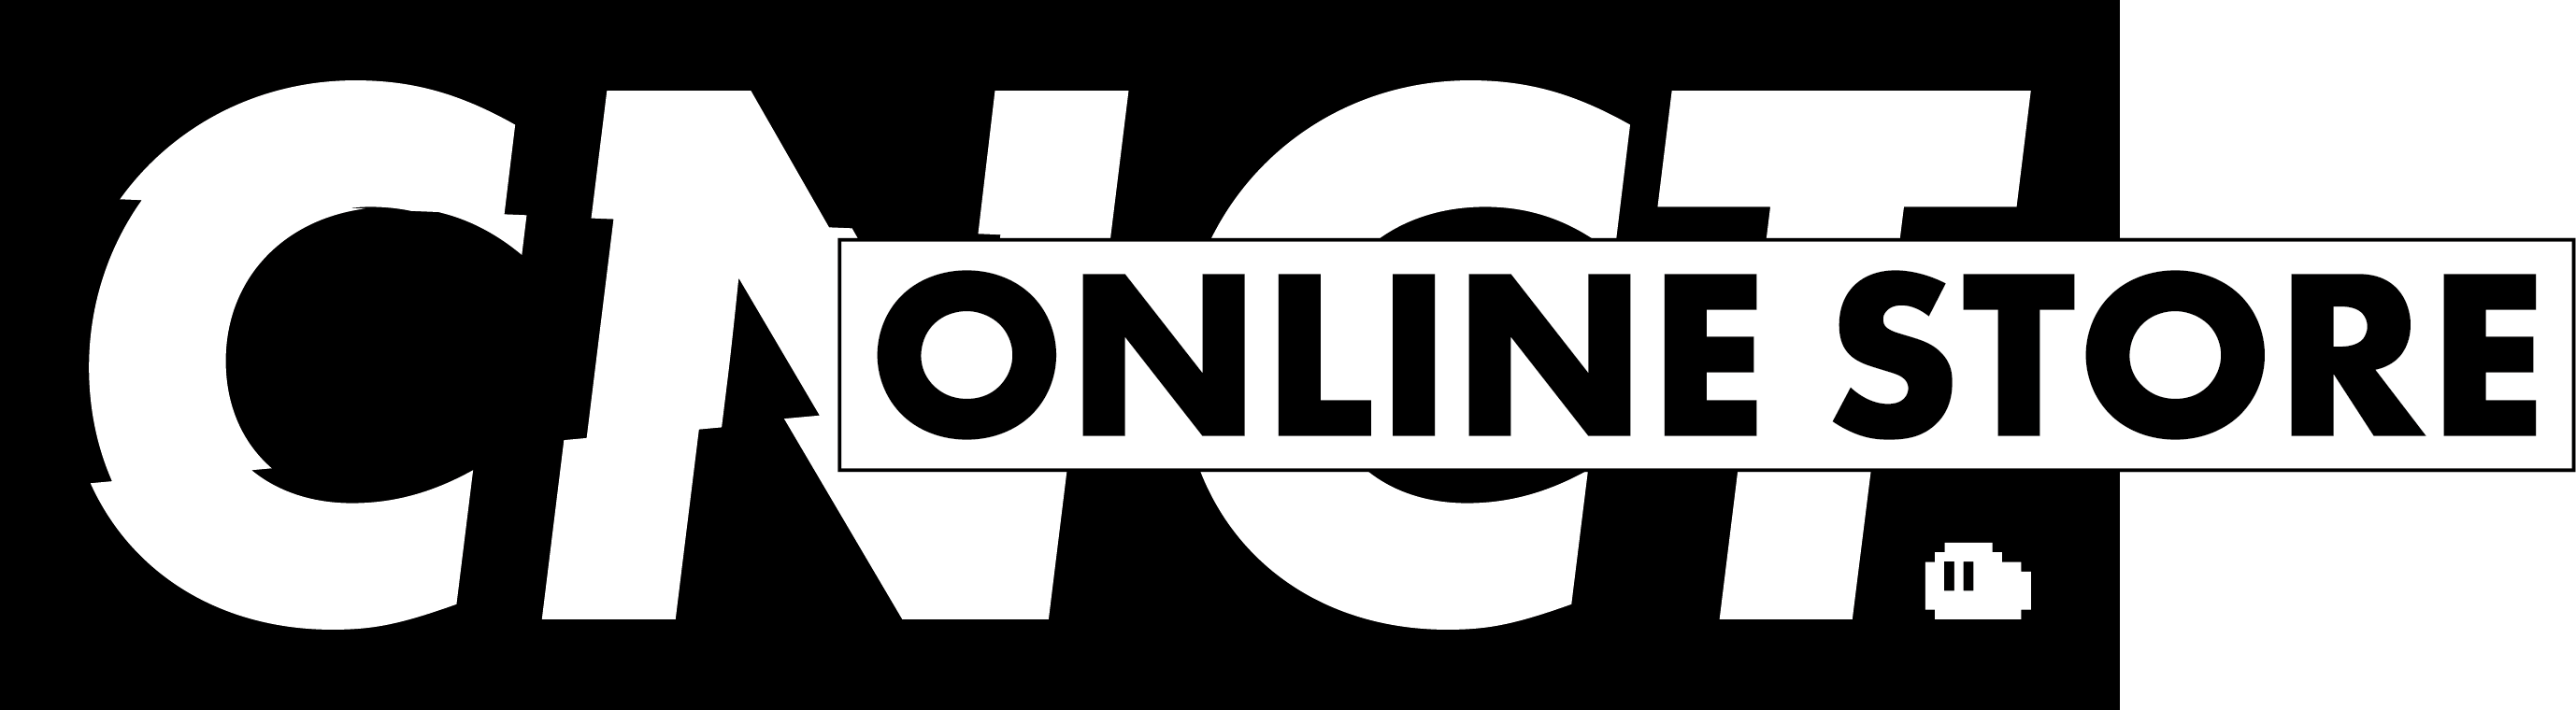 CNCT ONLINE STORE